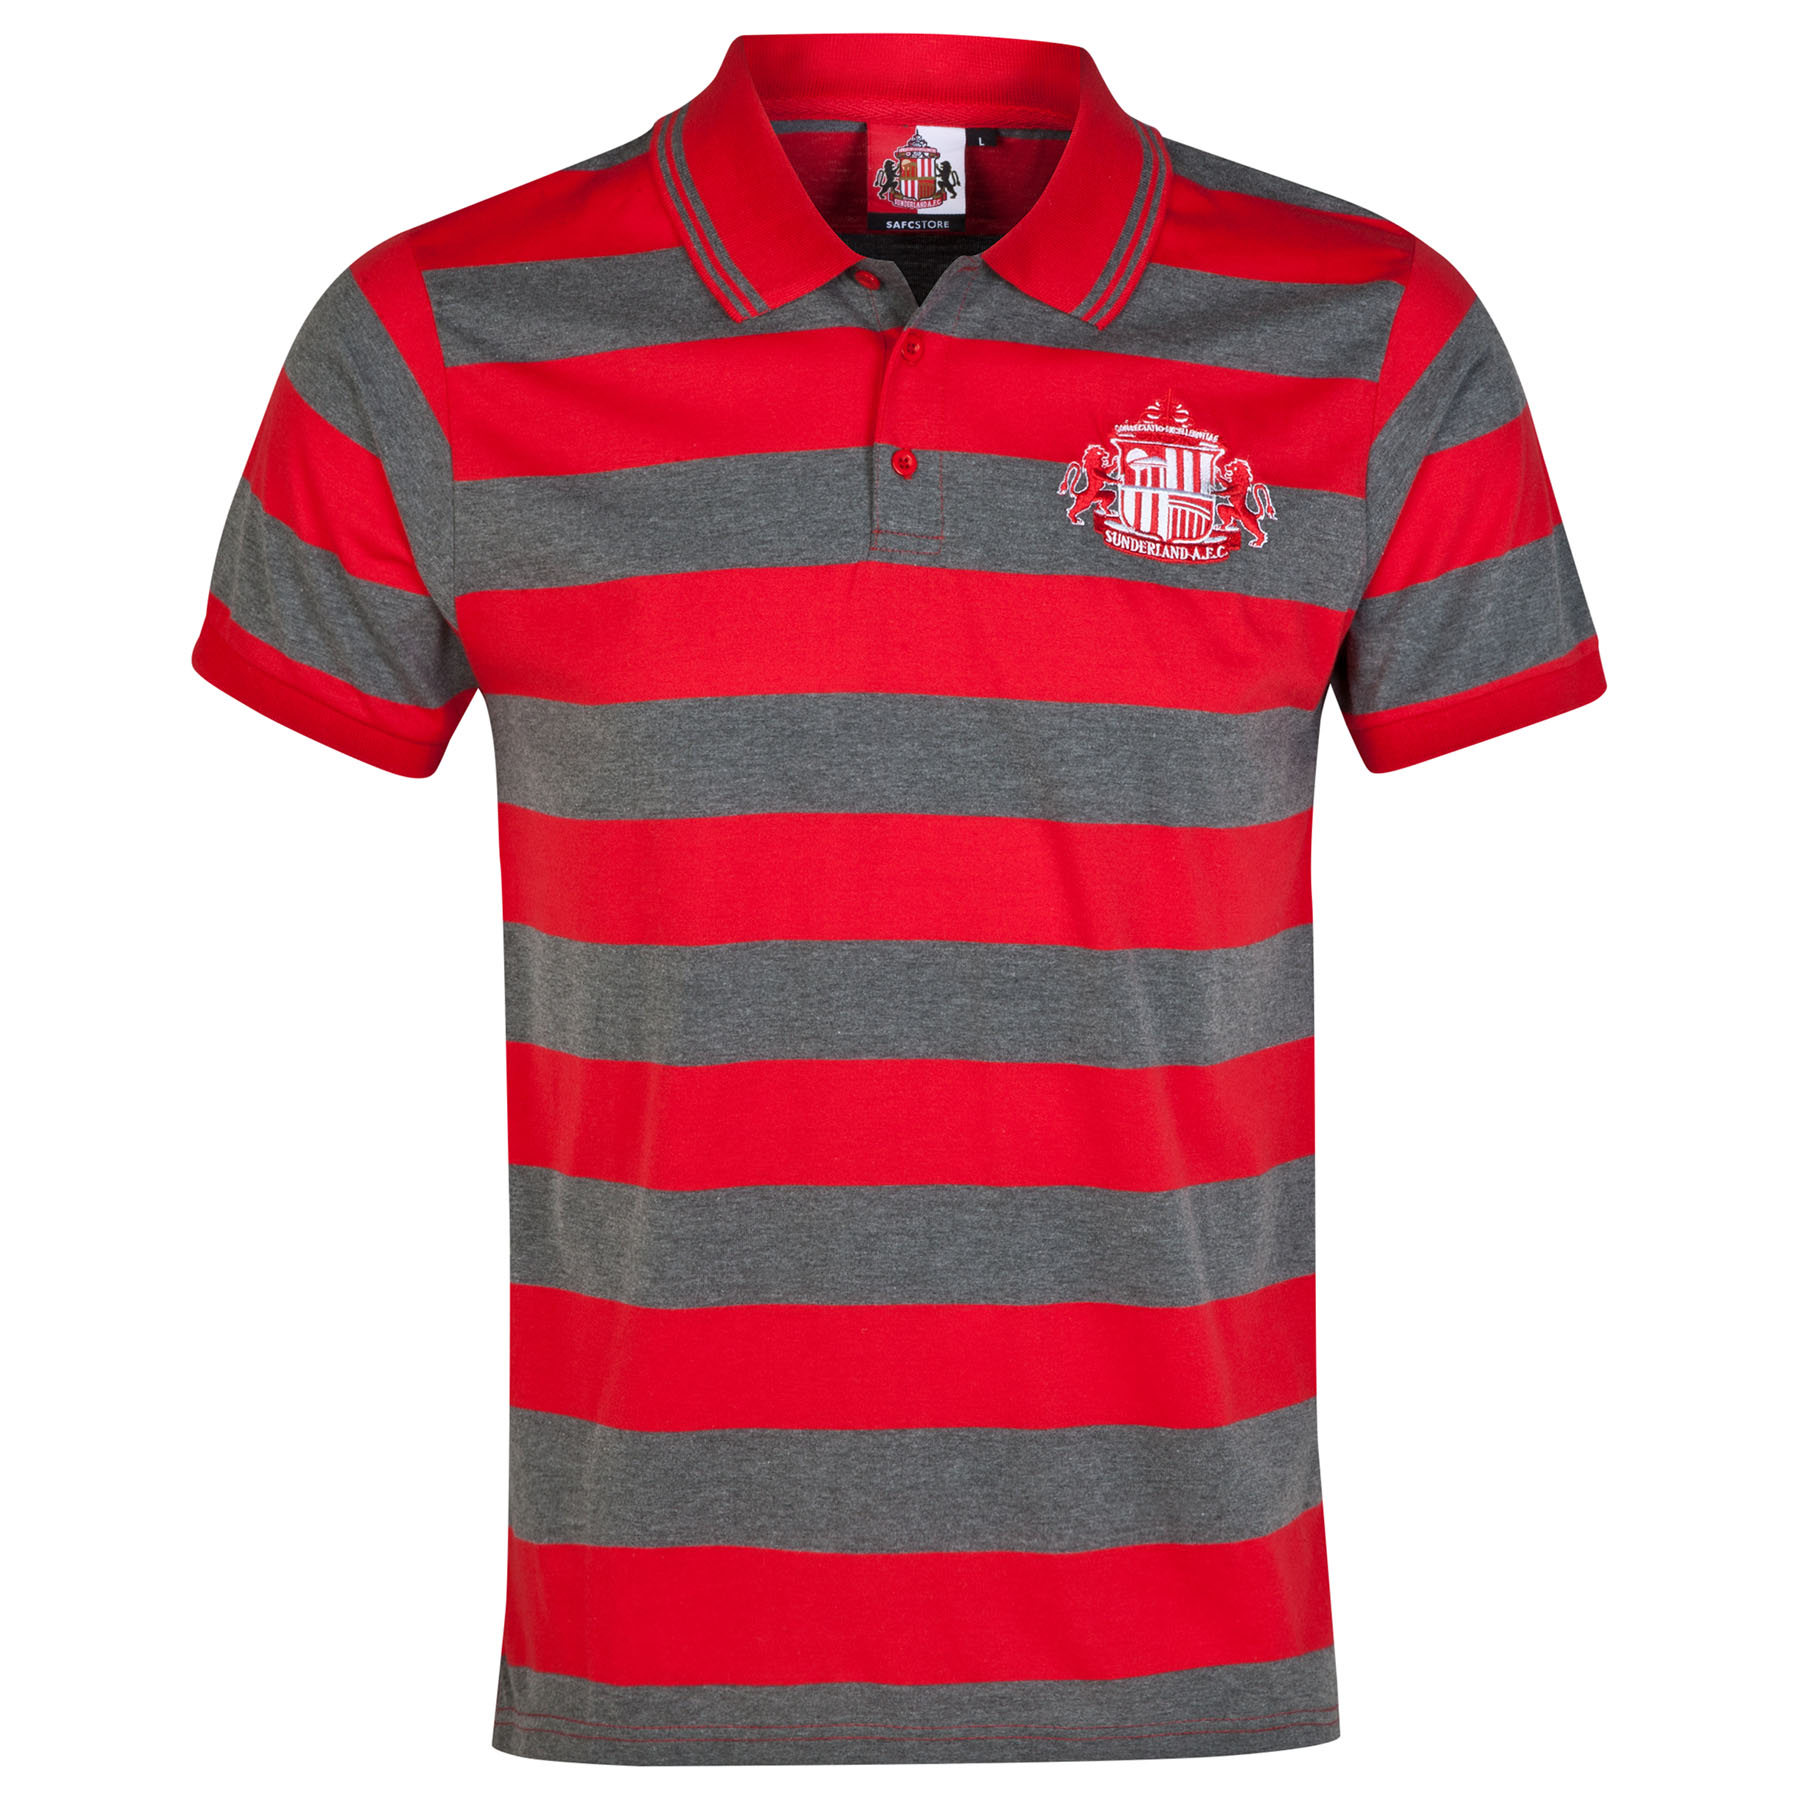 Sunderland Essential Polo Shirt - Red/Vintage Marl -Mens